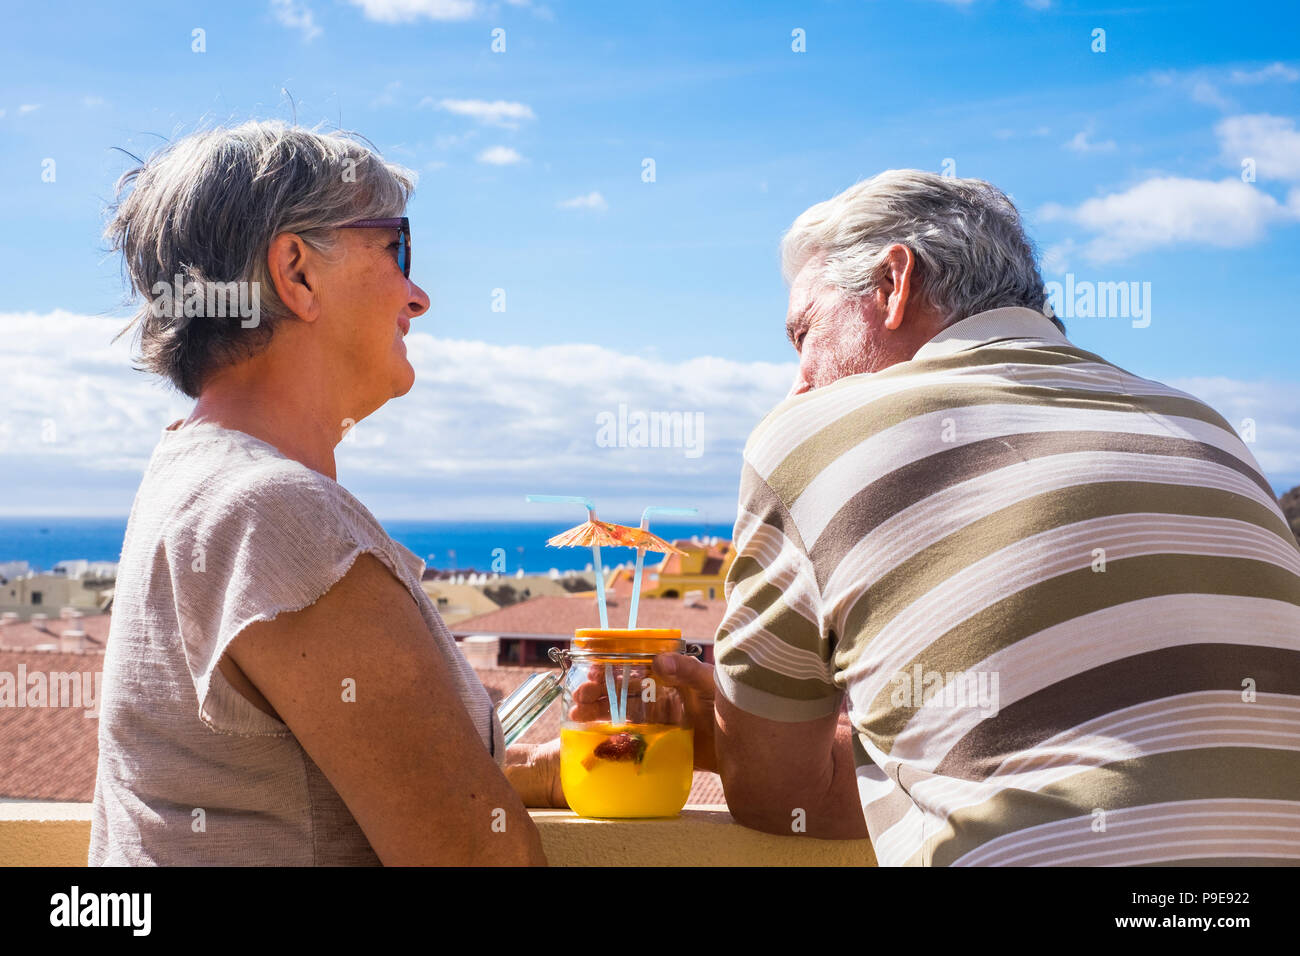 nice couple of retired adult stay together on the roofto pterrace eating and drinking some food and drink. happy smile people outdoor in great lifesty - Stock Image